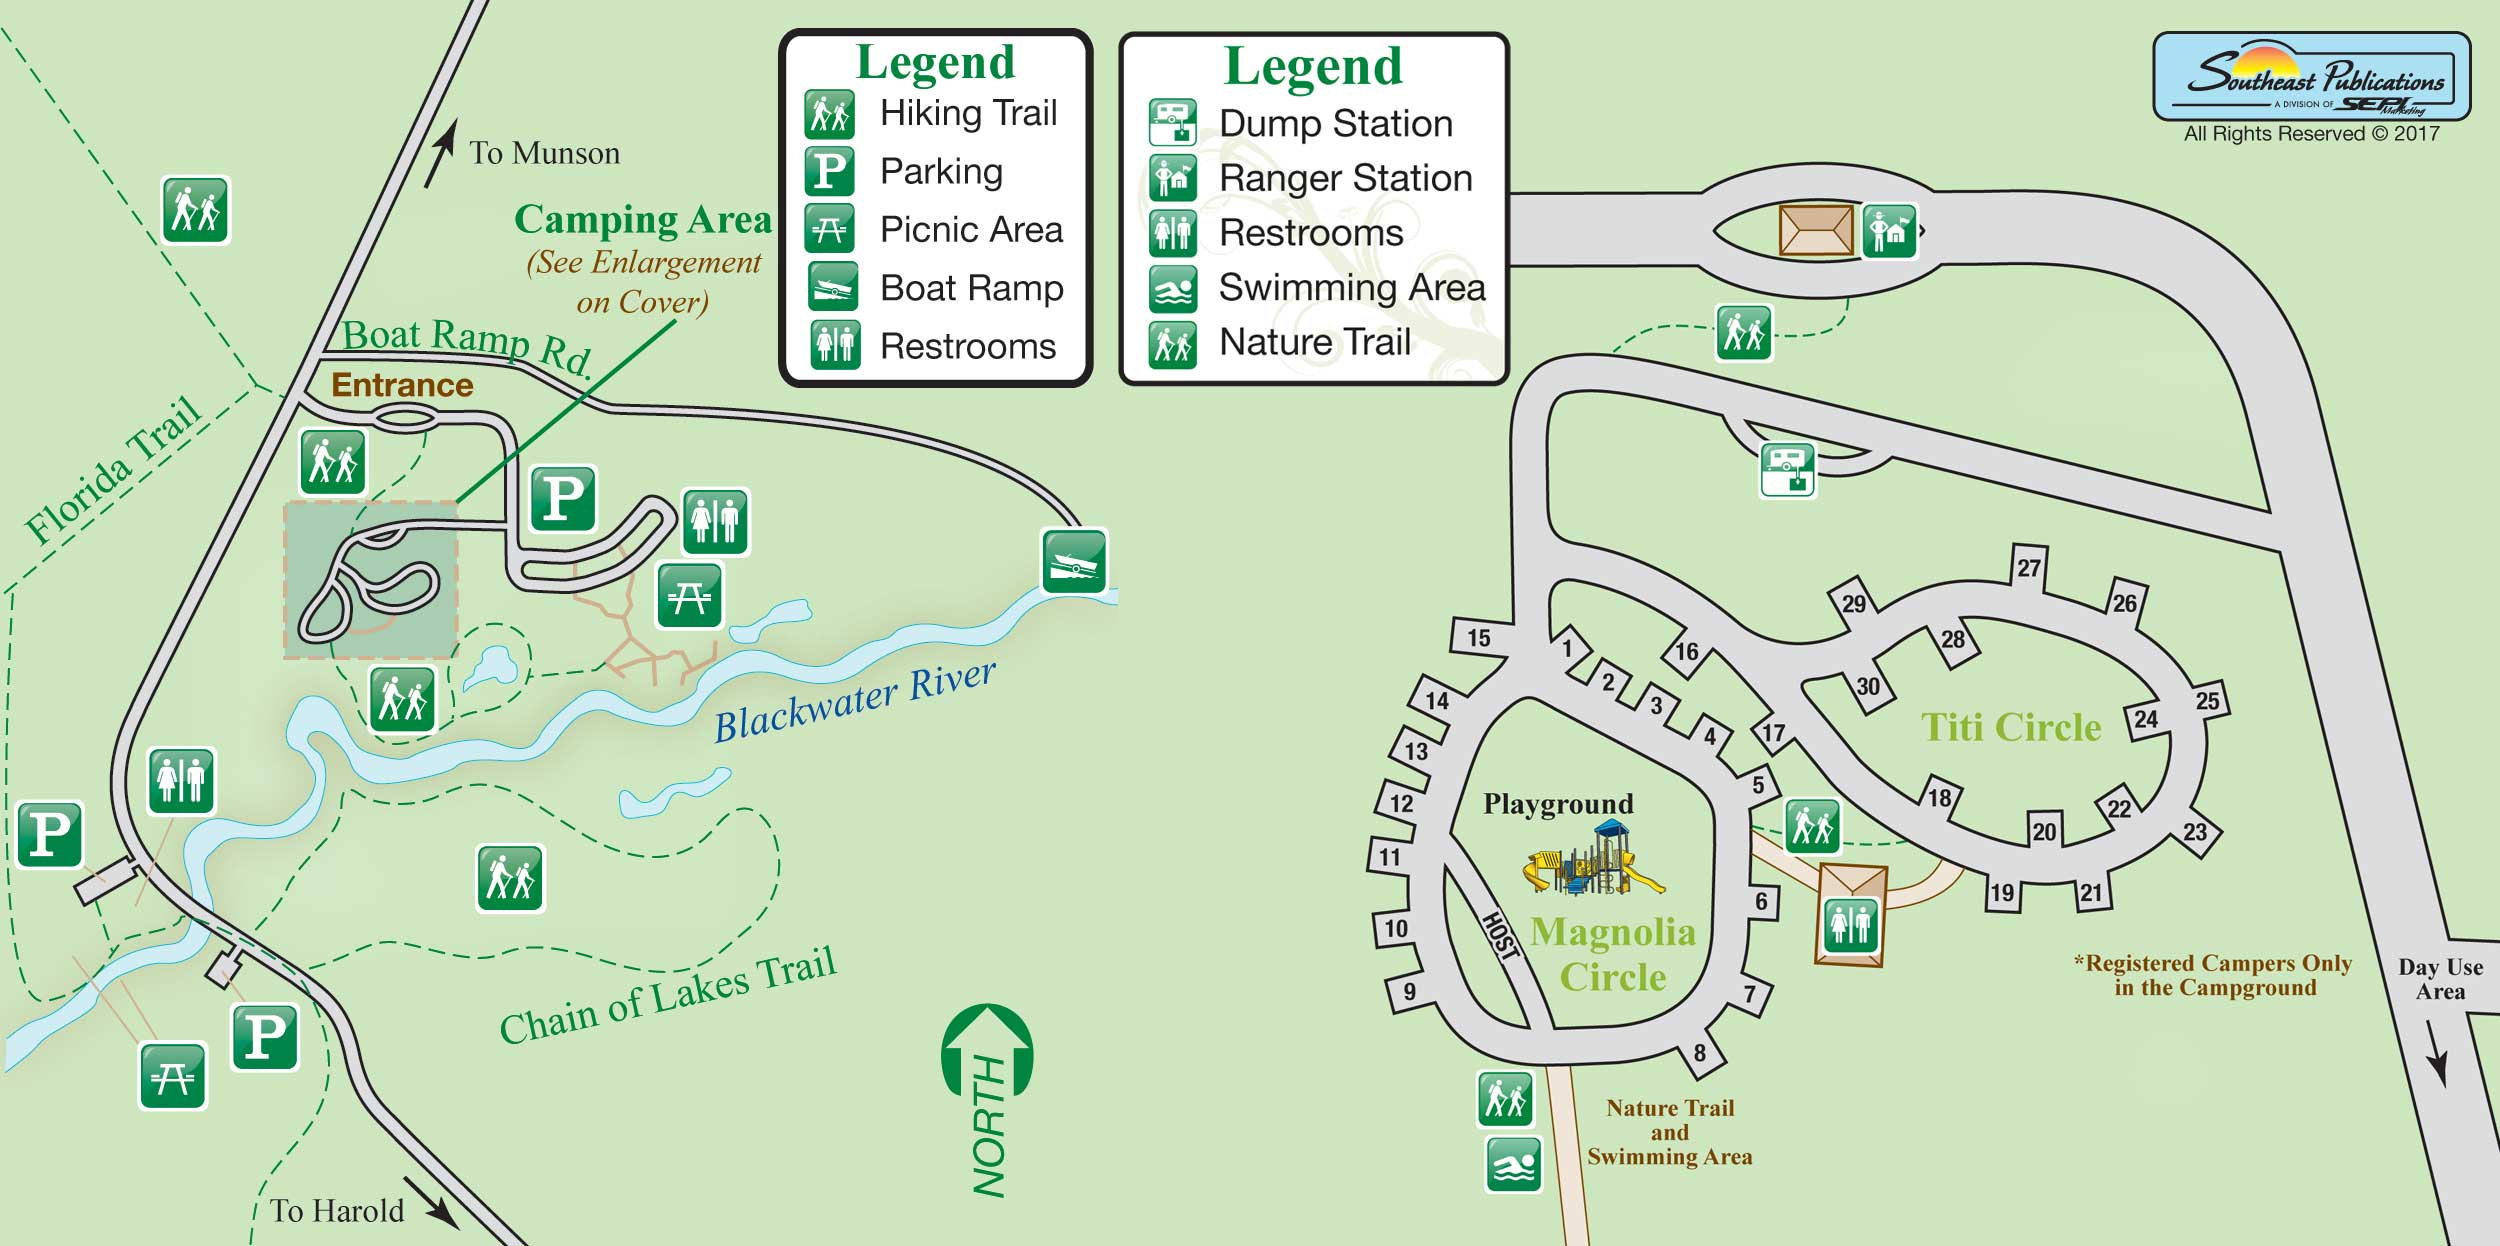 Florida State Parks Rv Camping - Know Your Campground - Florida Camping Map